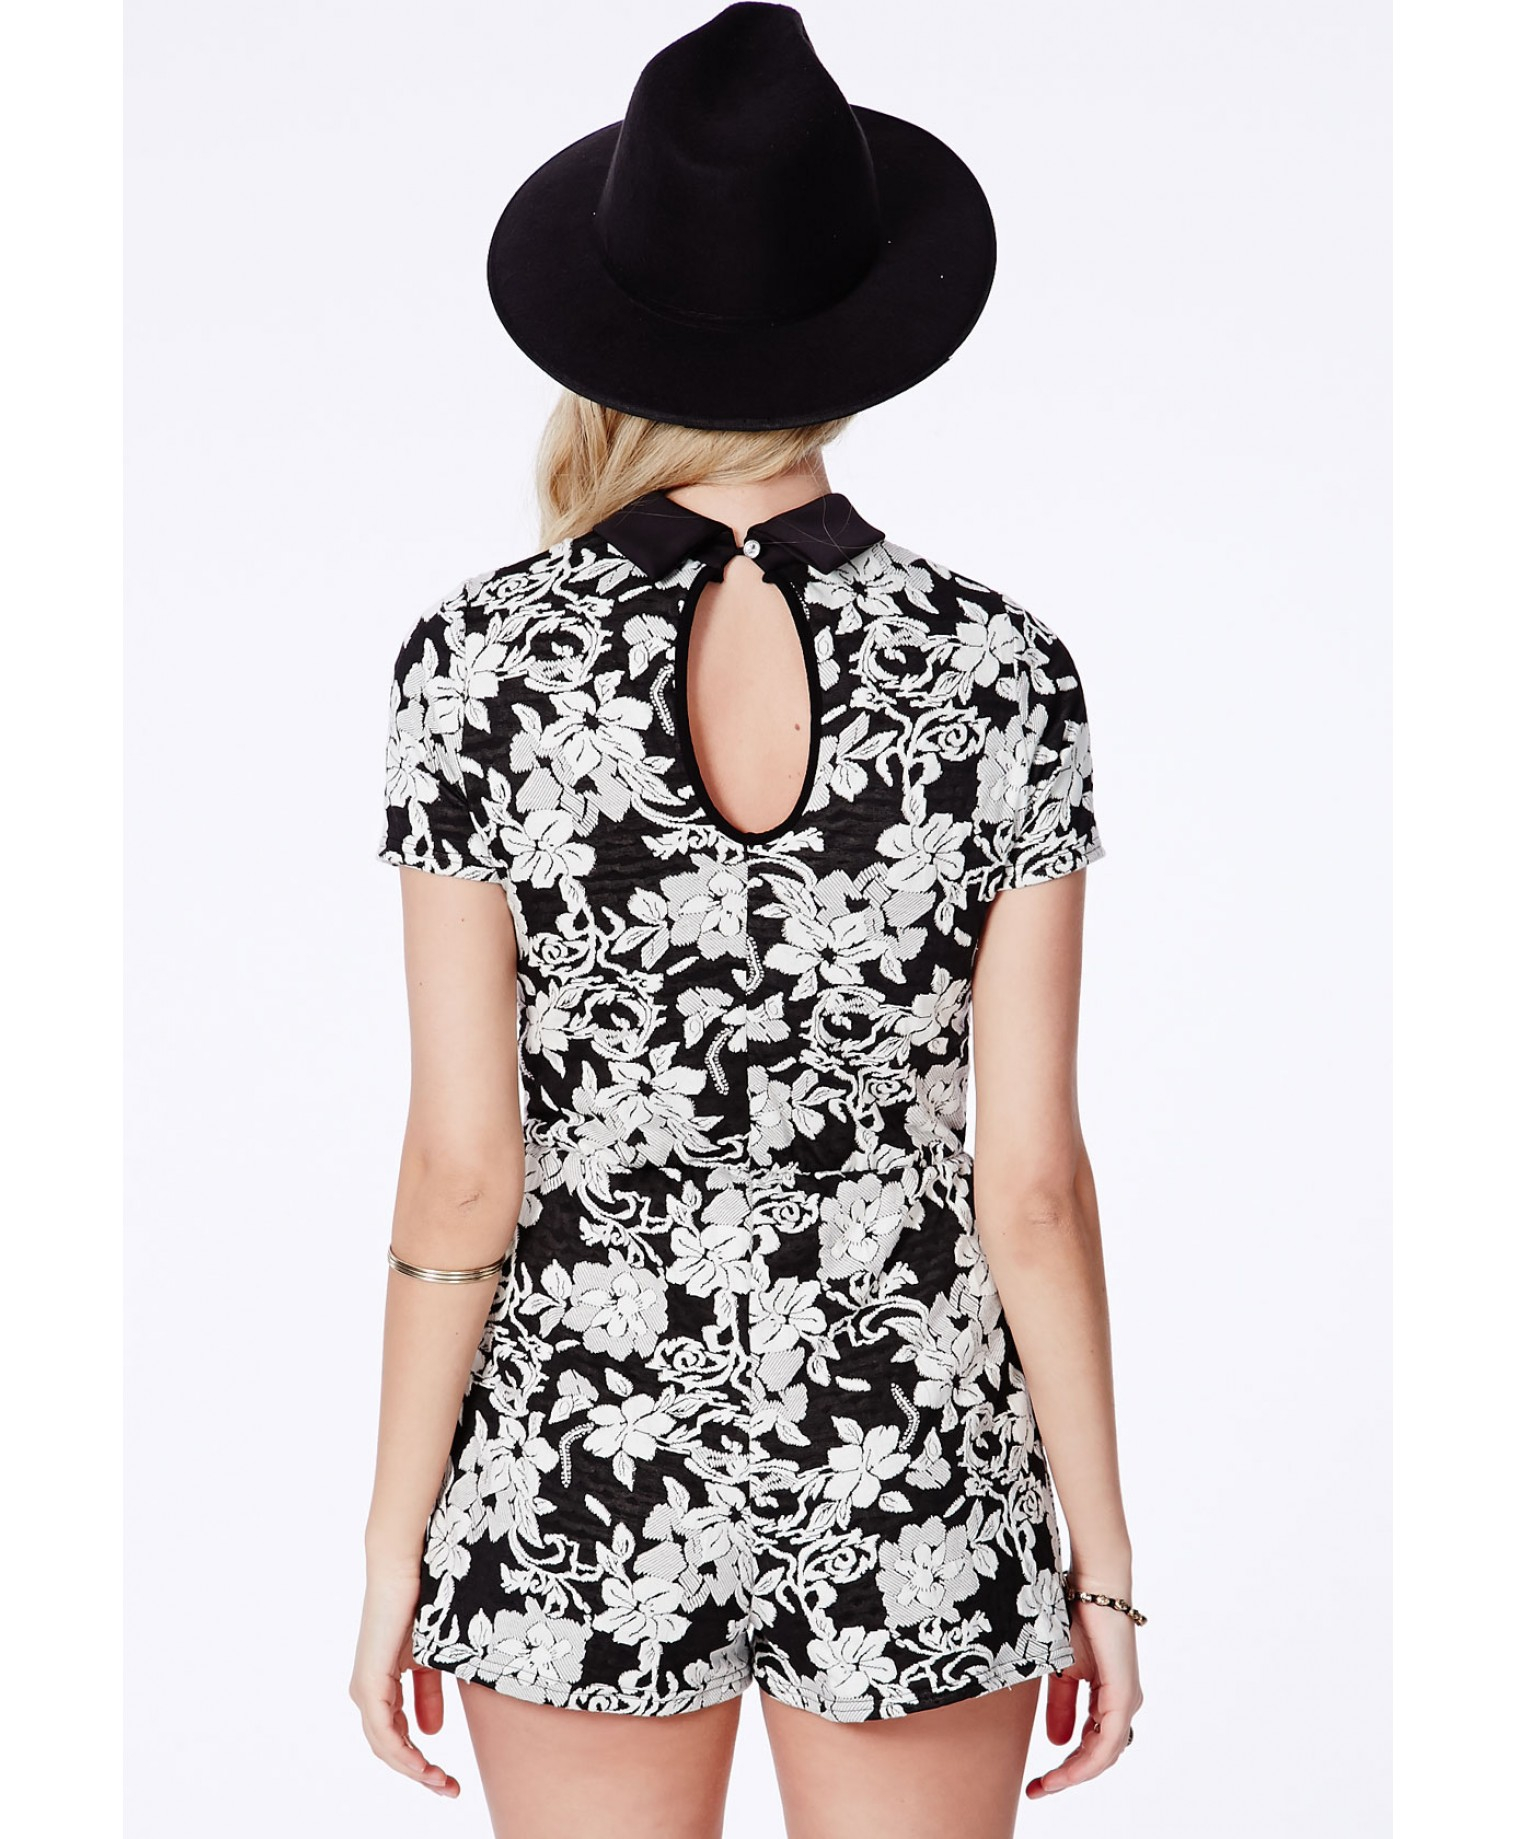 Missguided Lizara Floral Playsuit with Peter Pan Collar